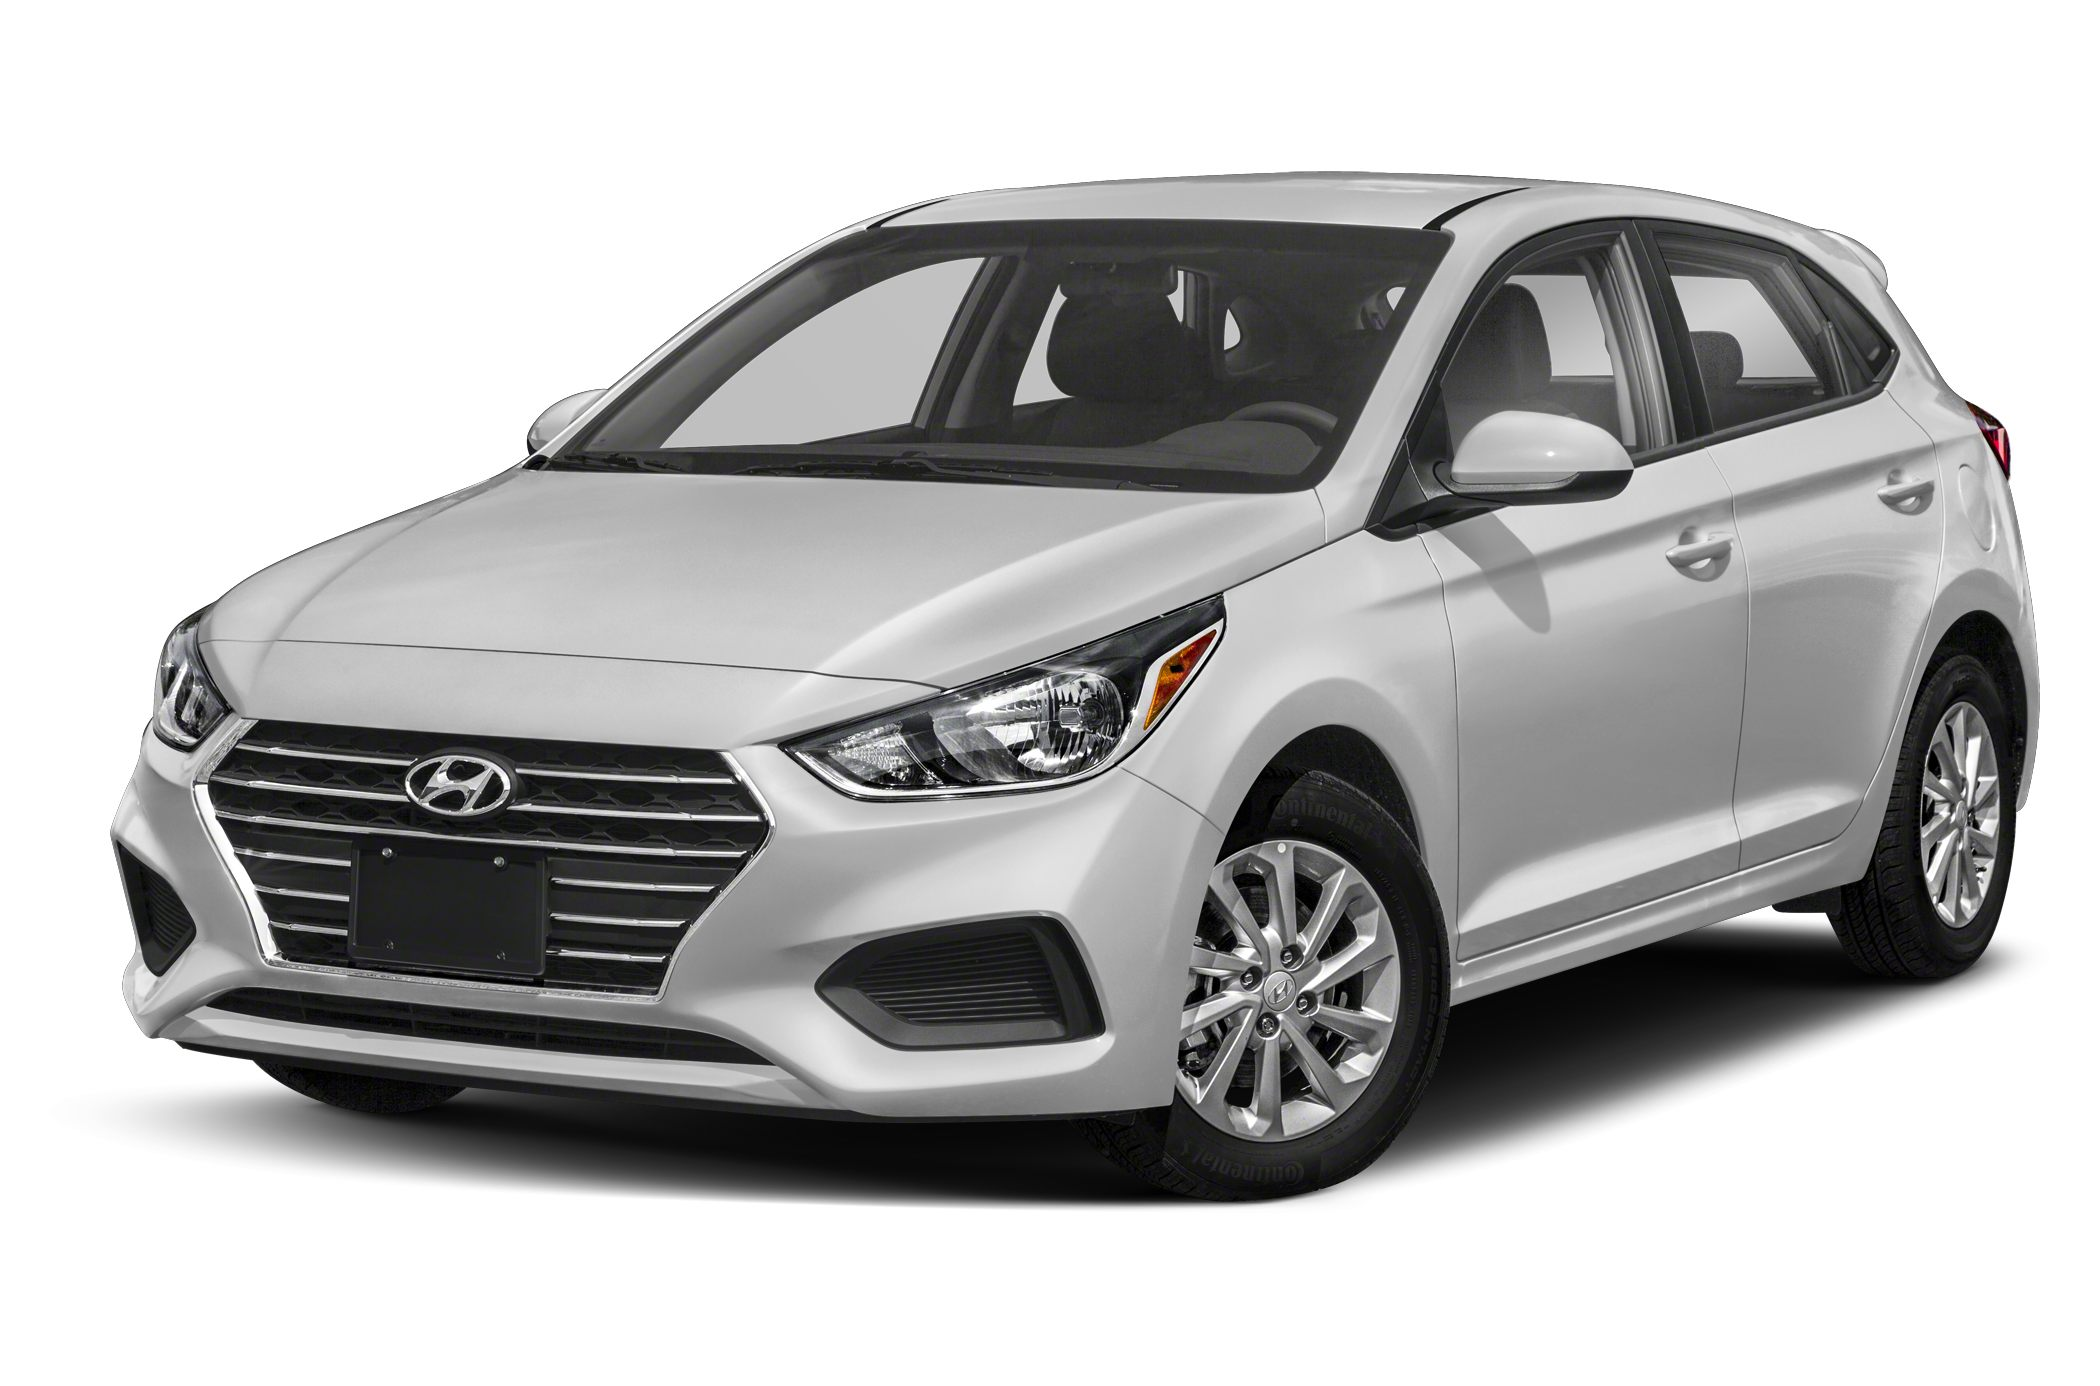 Hyundai Canada Incentives for the new 2019 Hyundai Accent Hatchback and Sedan in Milton, Toronto, and the GTA